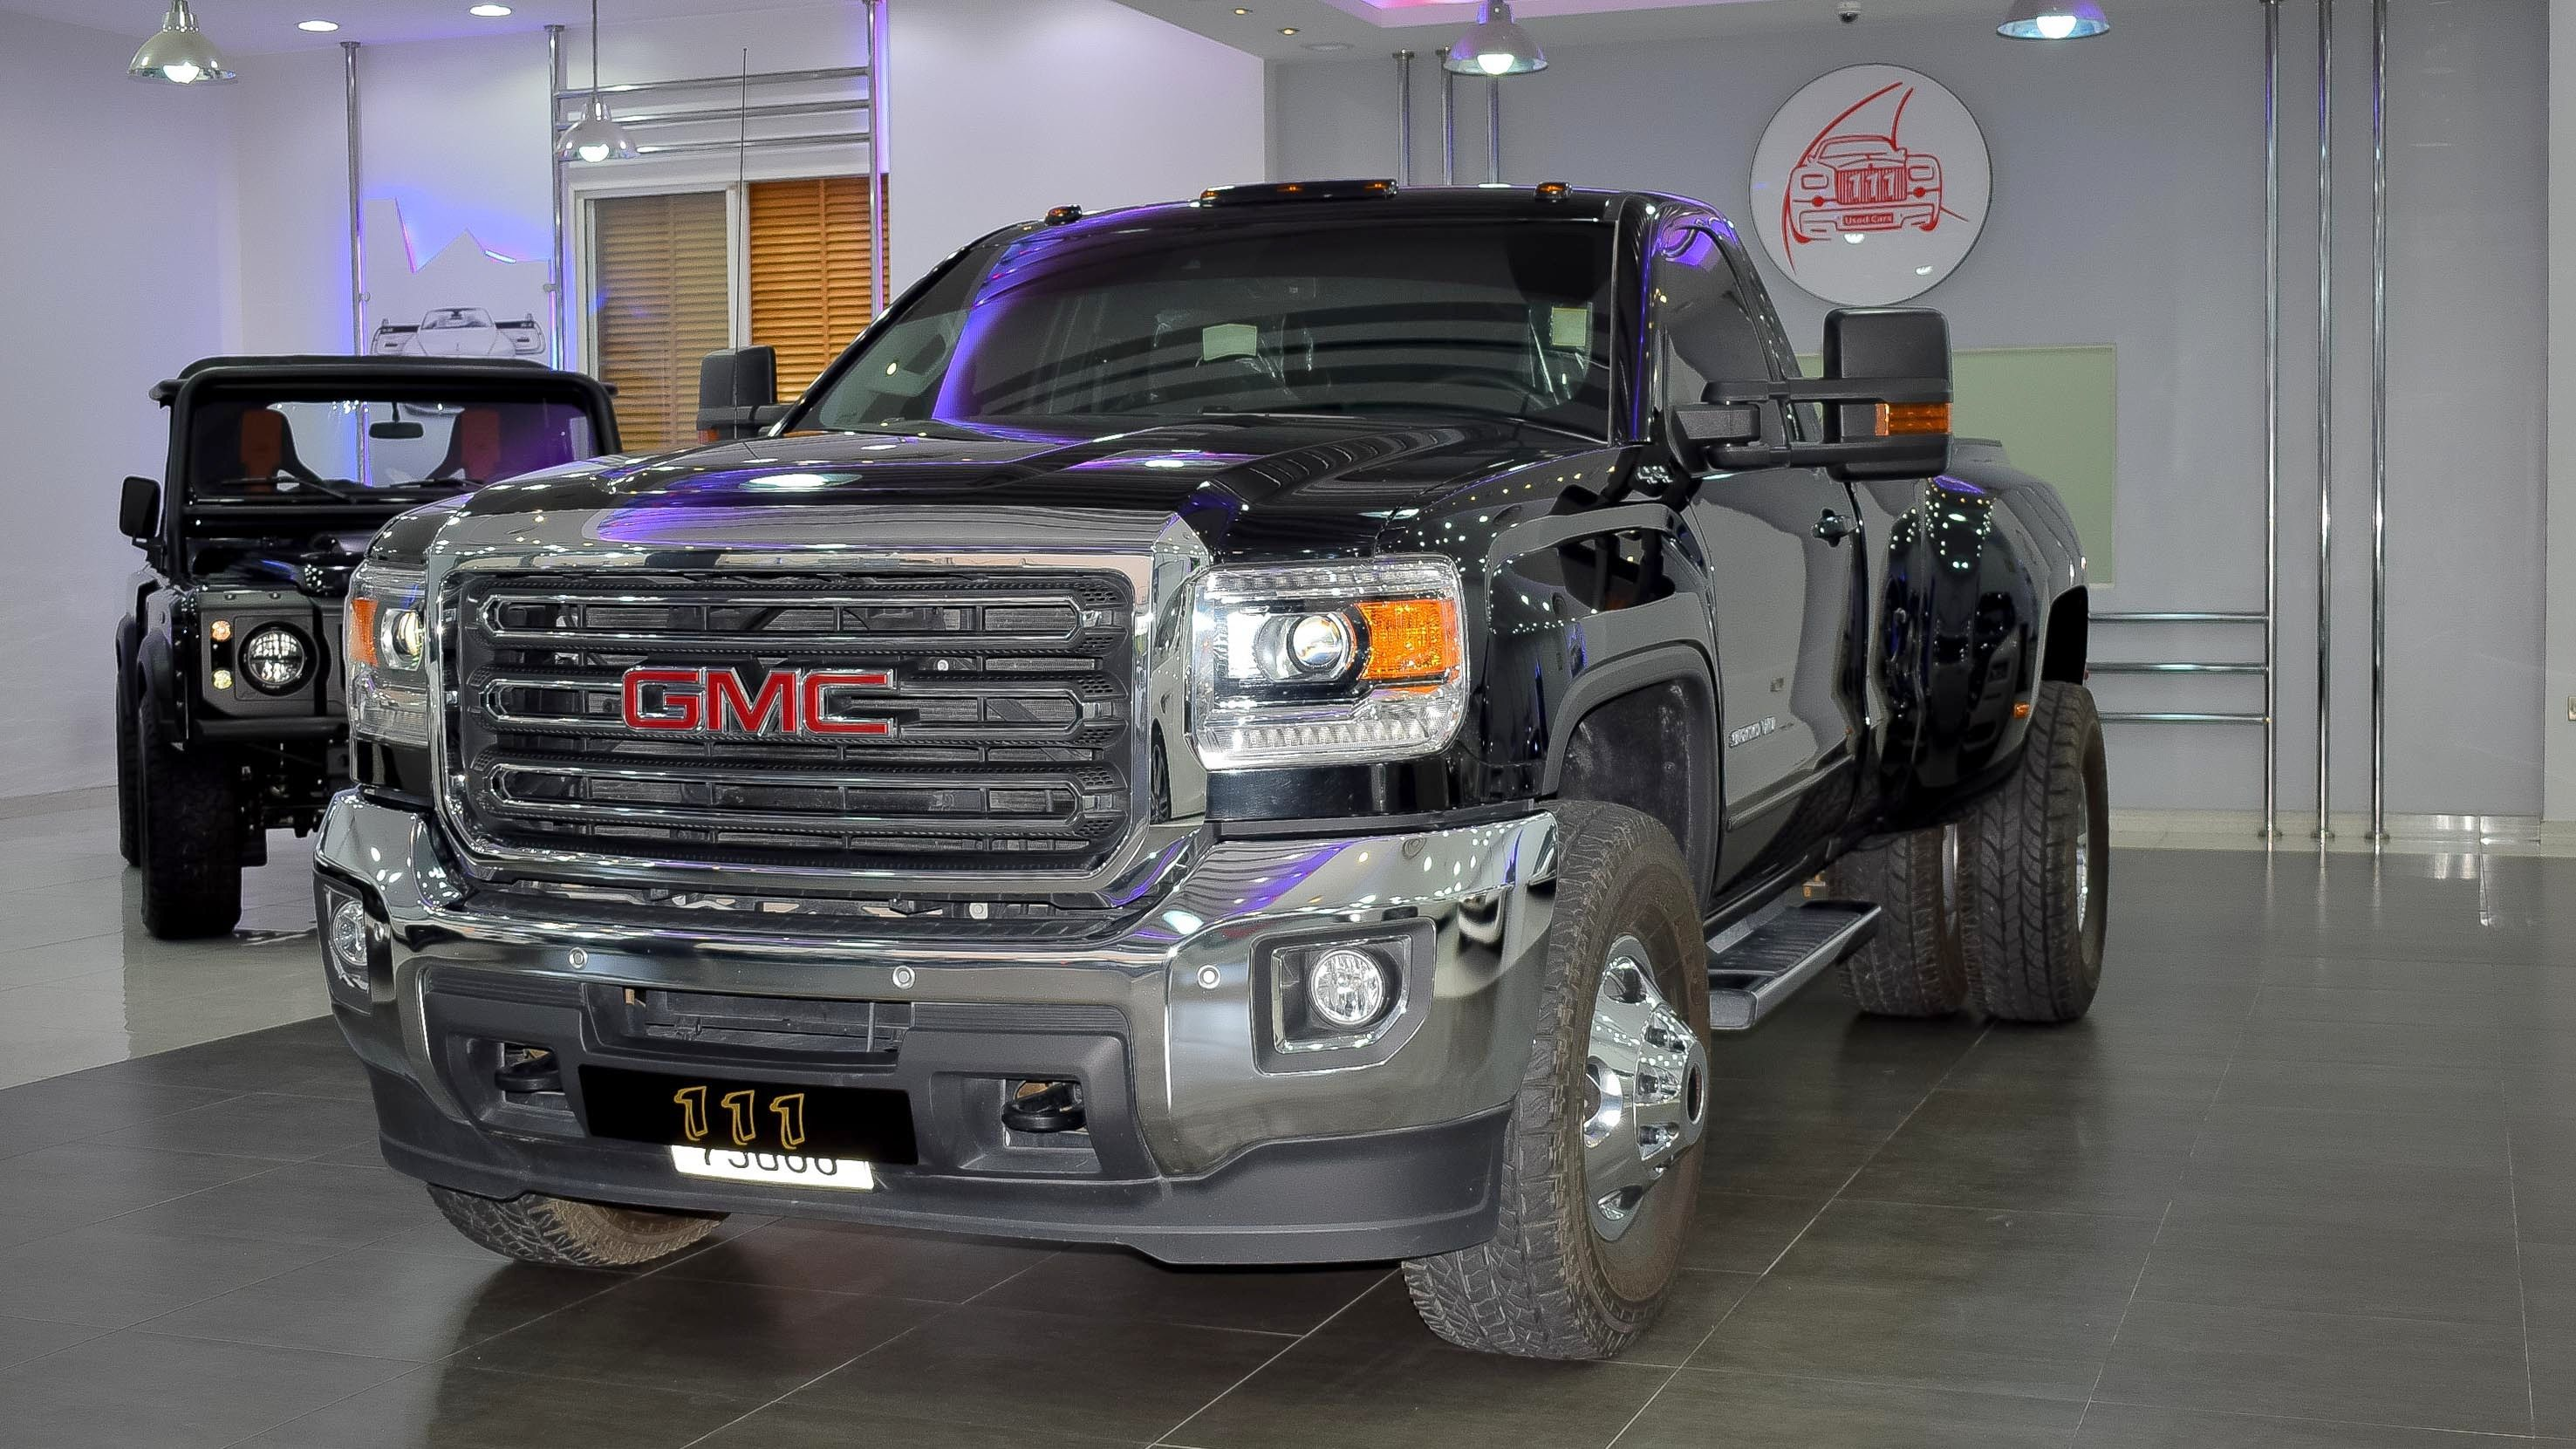 Model Gmc Sierra 3500 Hd Gulf Specs Year 2017 Km 8 000